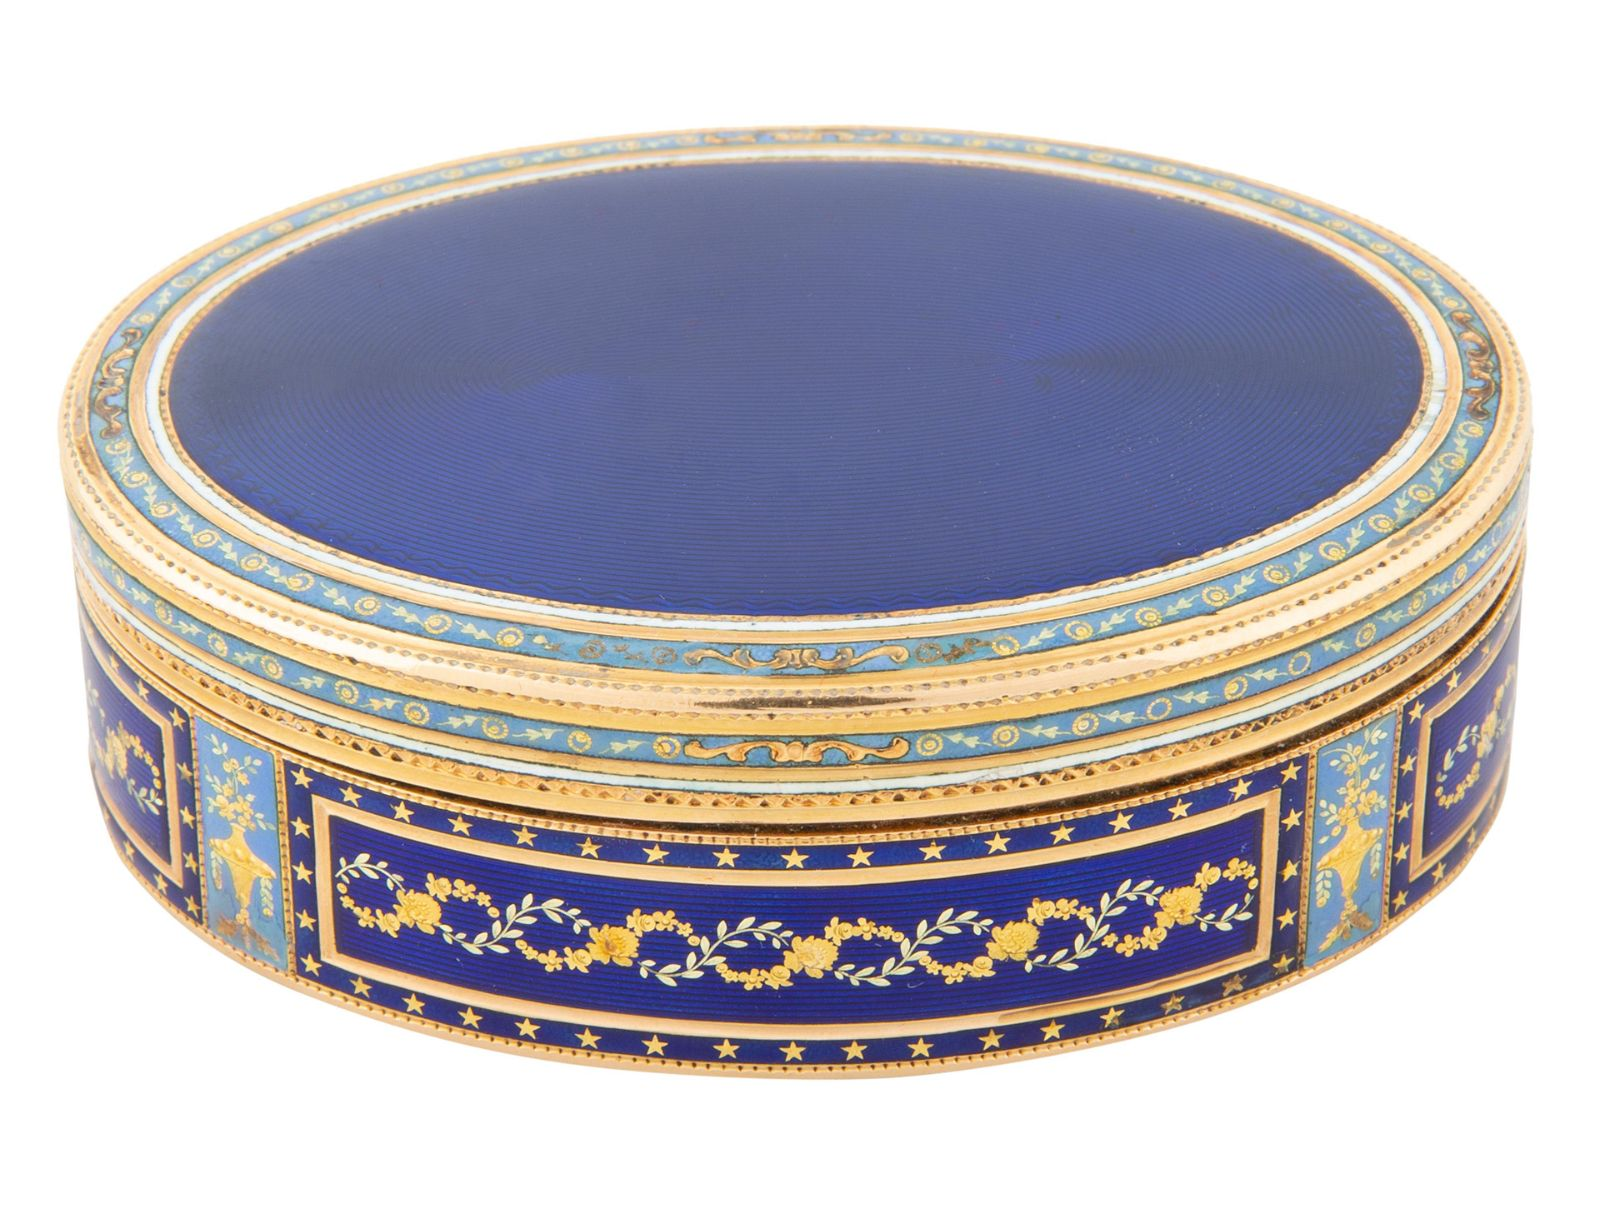 A FRENCH GOLD AND GUILLOCHE ENAMEL SNUFF BOX, 19TH